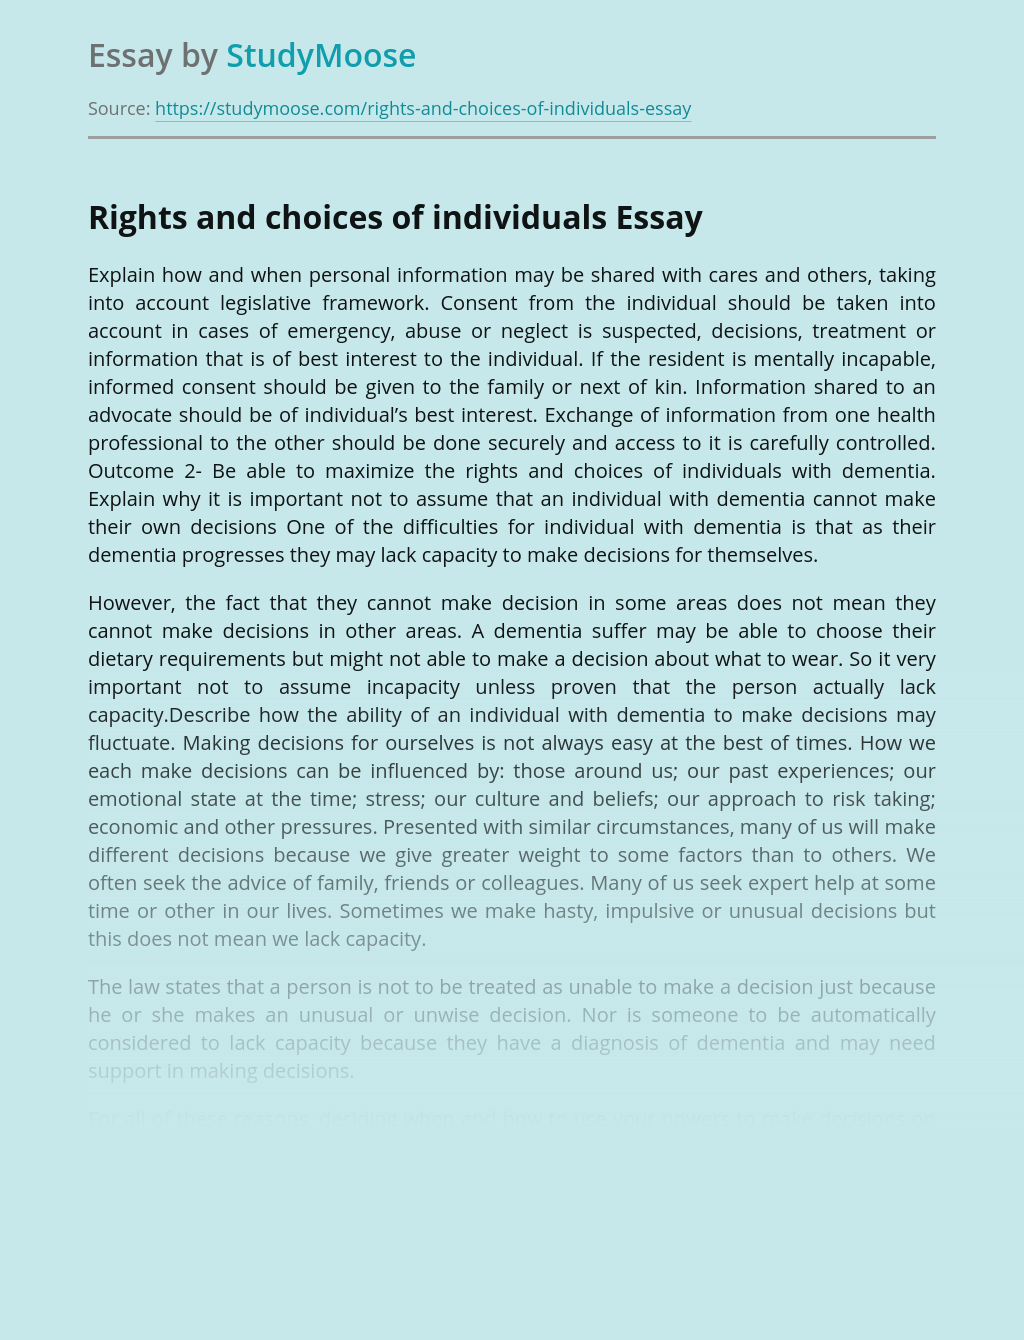 Rights and choices of individuals